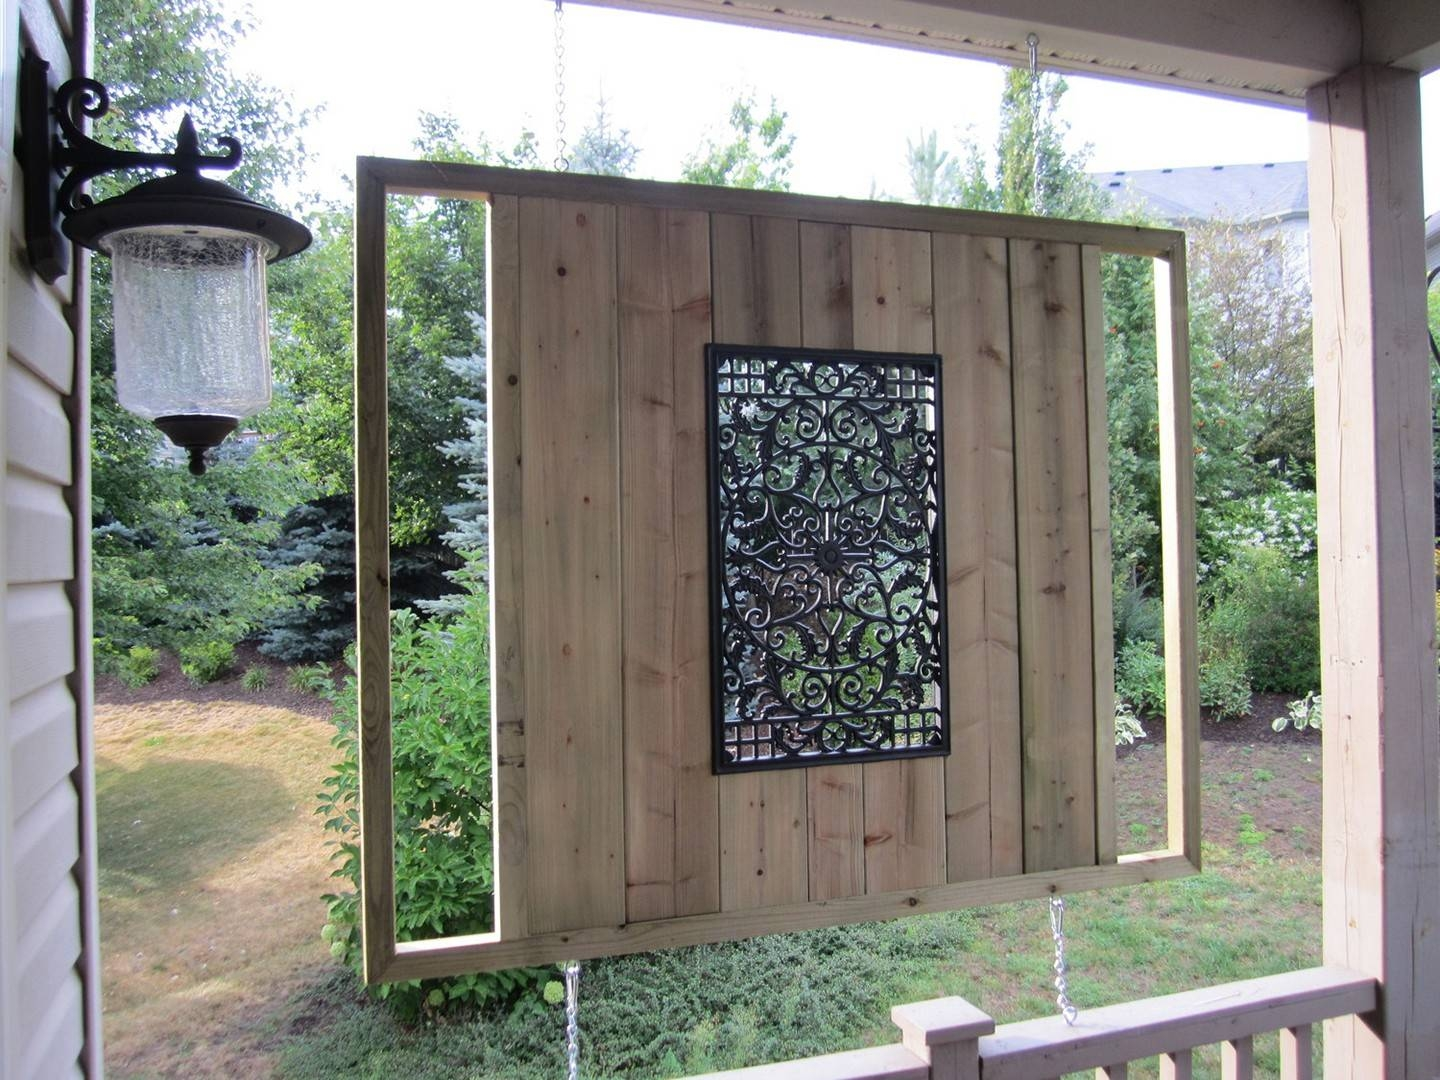 Diy Outdoor Metal Wallg Patio Decor Ideas Outstanding Wall Picture Intended For Recent Diy Garden Wall Art (View 9 of 25)